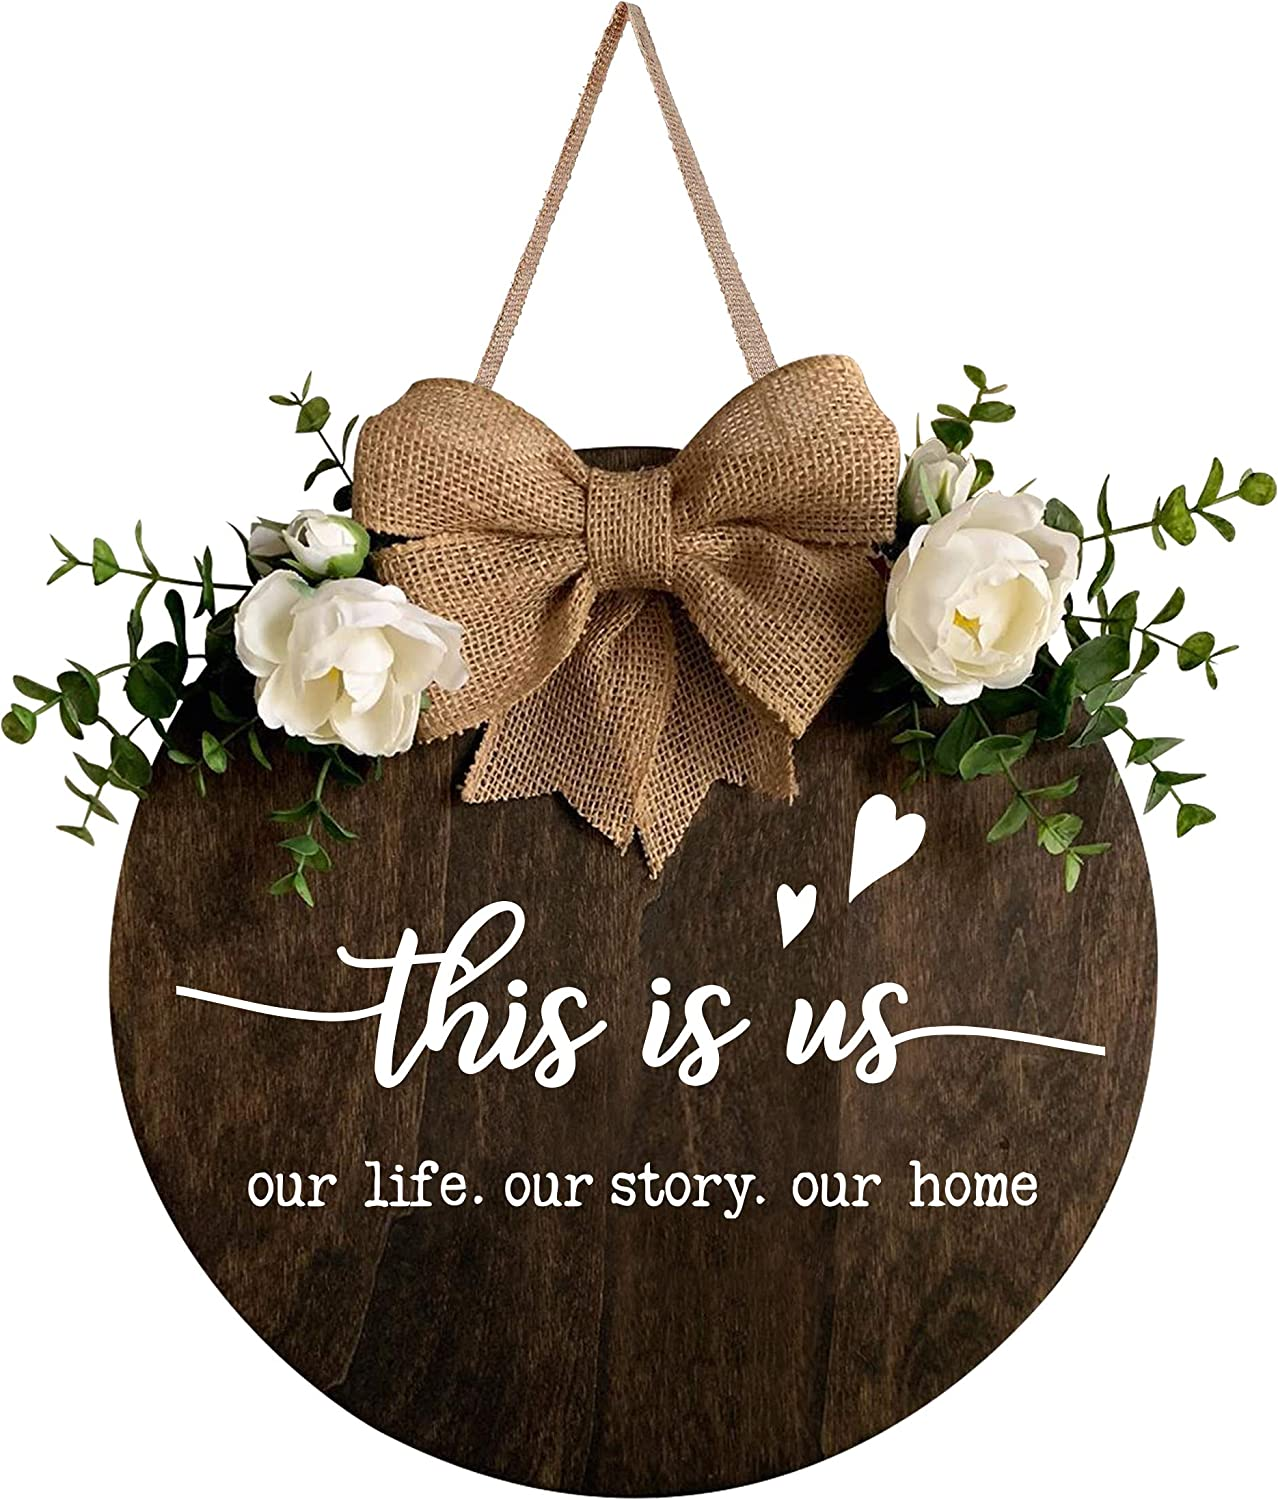 MayAvenue This is Us Wreaths Decor Sign Front Door, Round Wood Hanging Sign with Ribbon Bow and Artificial Green Leaves, Farmhouse Porch Decorations for Home Thanksgiving, Brown